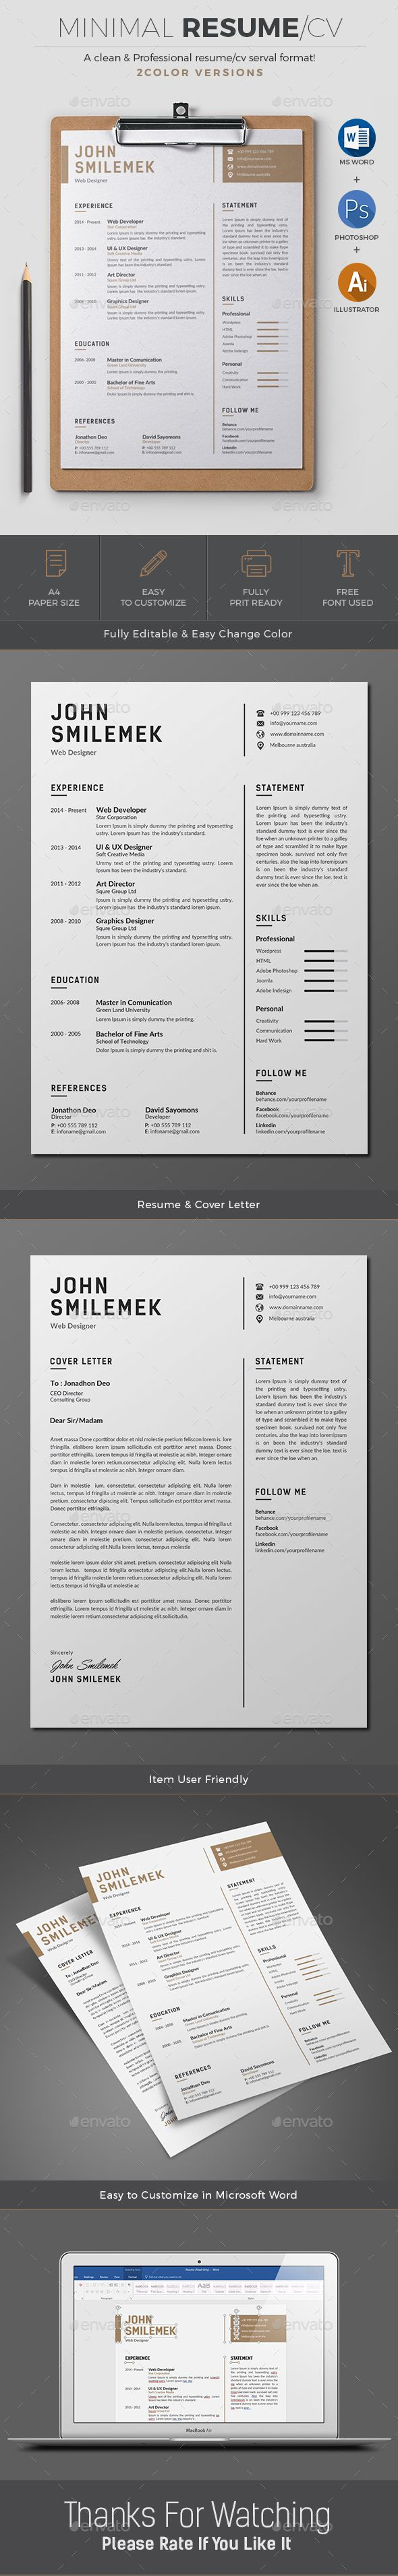 resume cover letter creative and creative resume buy resume by on graphicriver minimal amp simple resume cv template to help you land that great job the flexible page designs are easy to use an